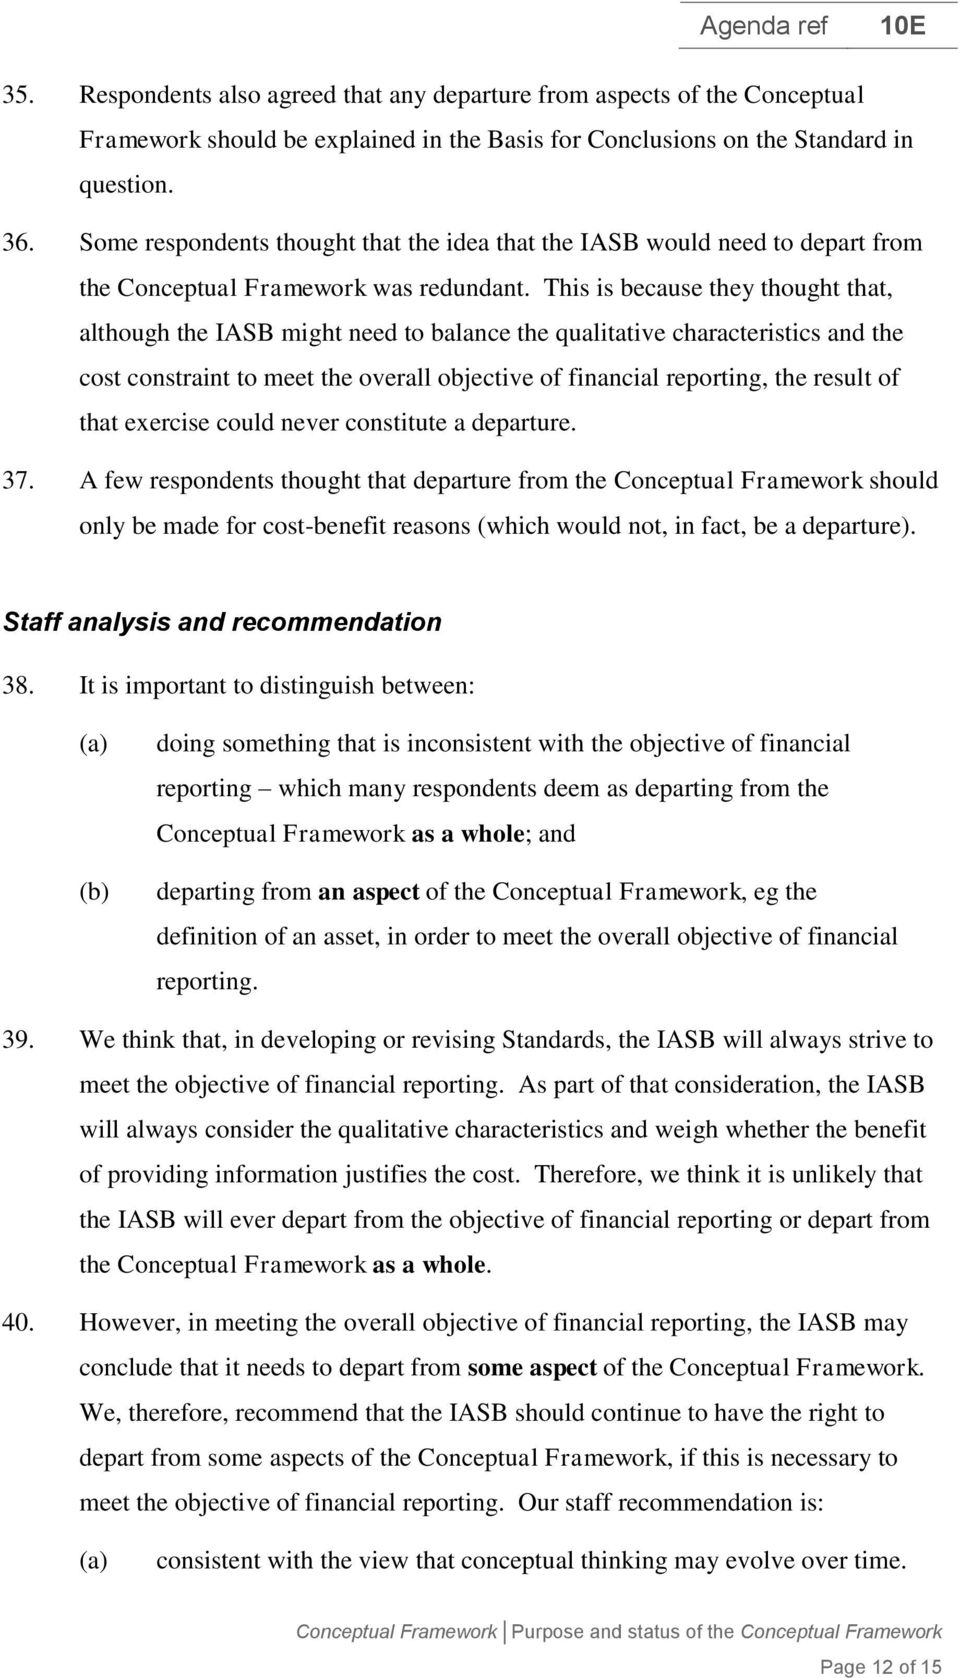 This is because they thought that, although the IASB might need to balance the qualitative characteristics and the cost constraint to meet the overall objective of financial reporting, the result of